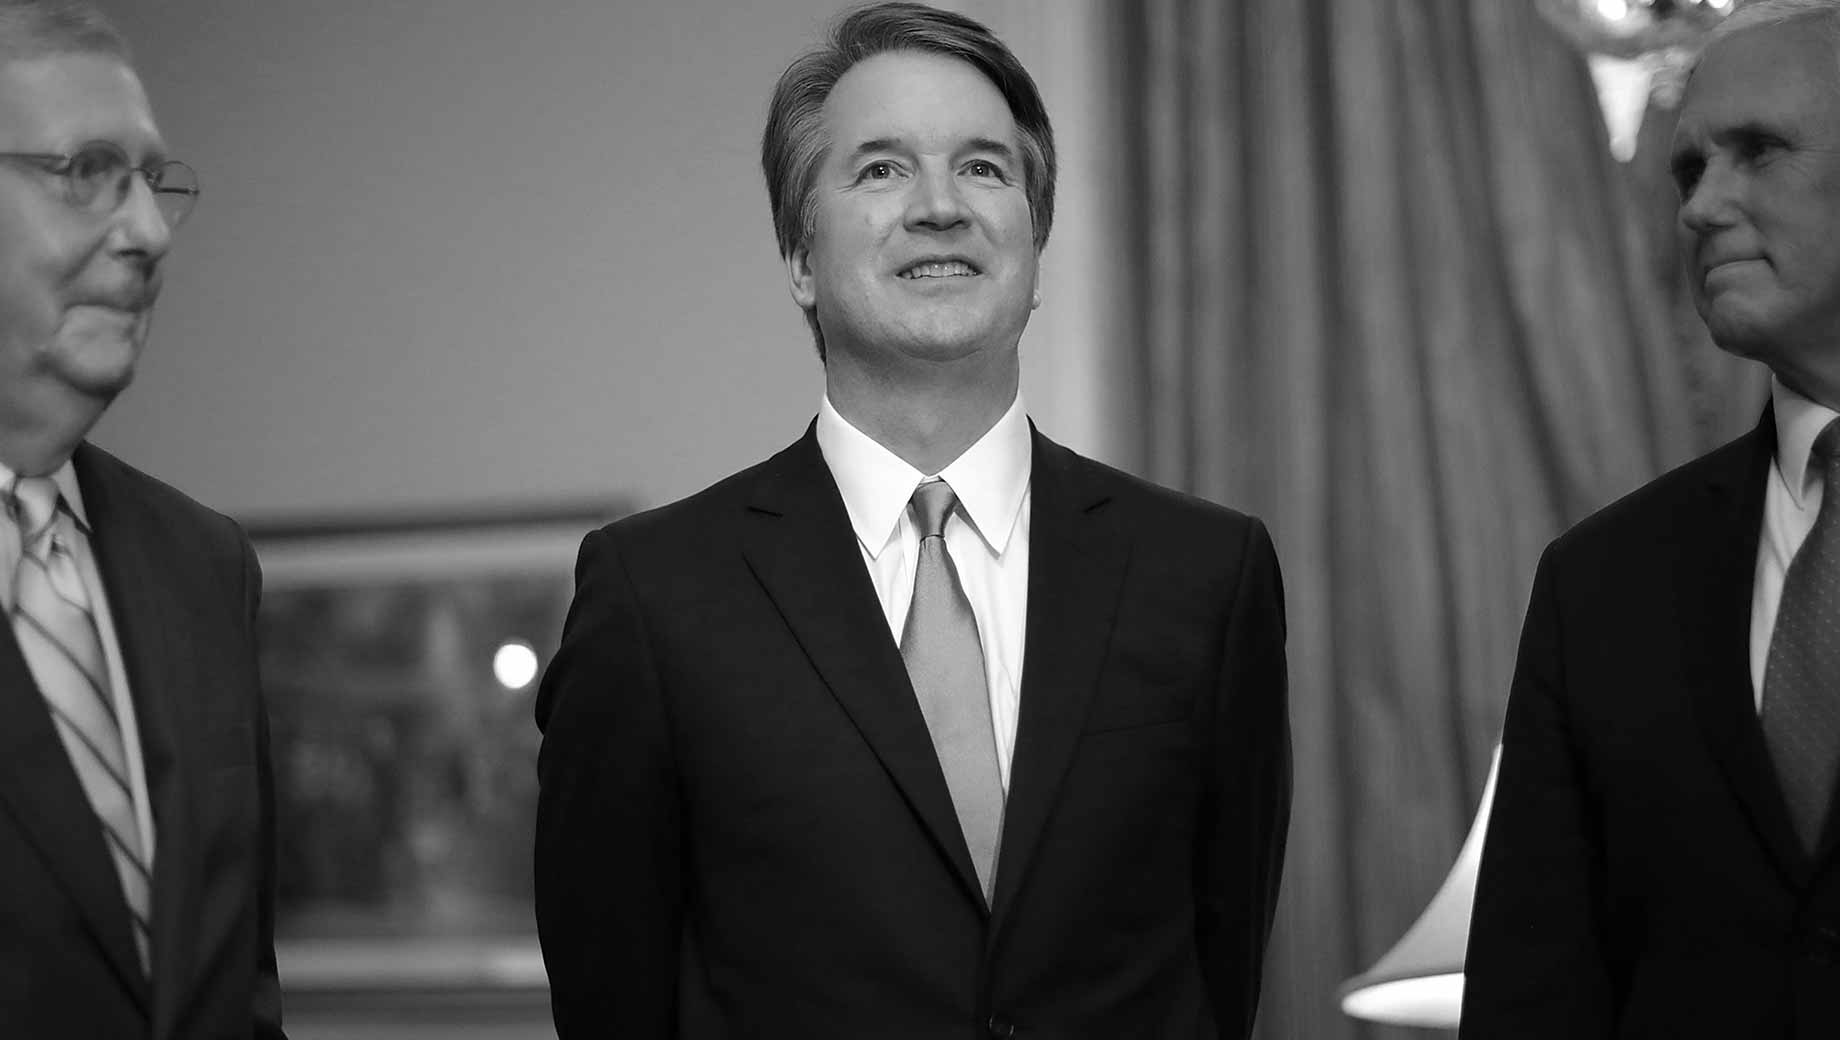 Views of Kavanaugh Confirmation Remain Closely Divided